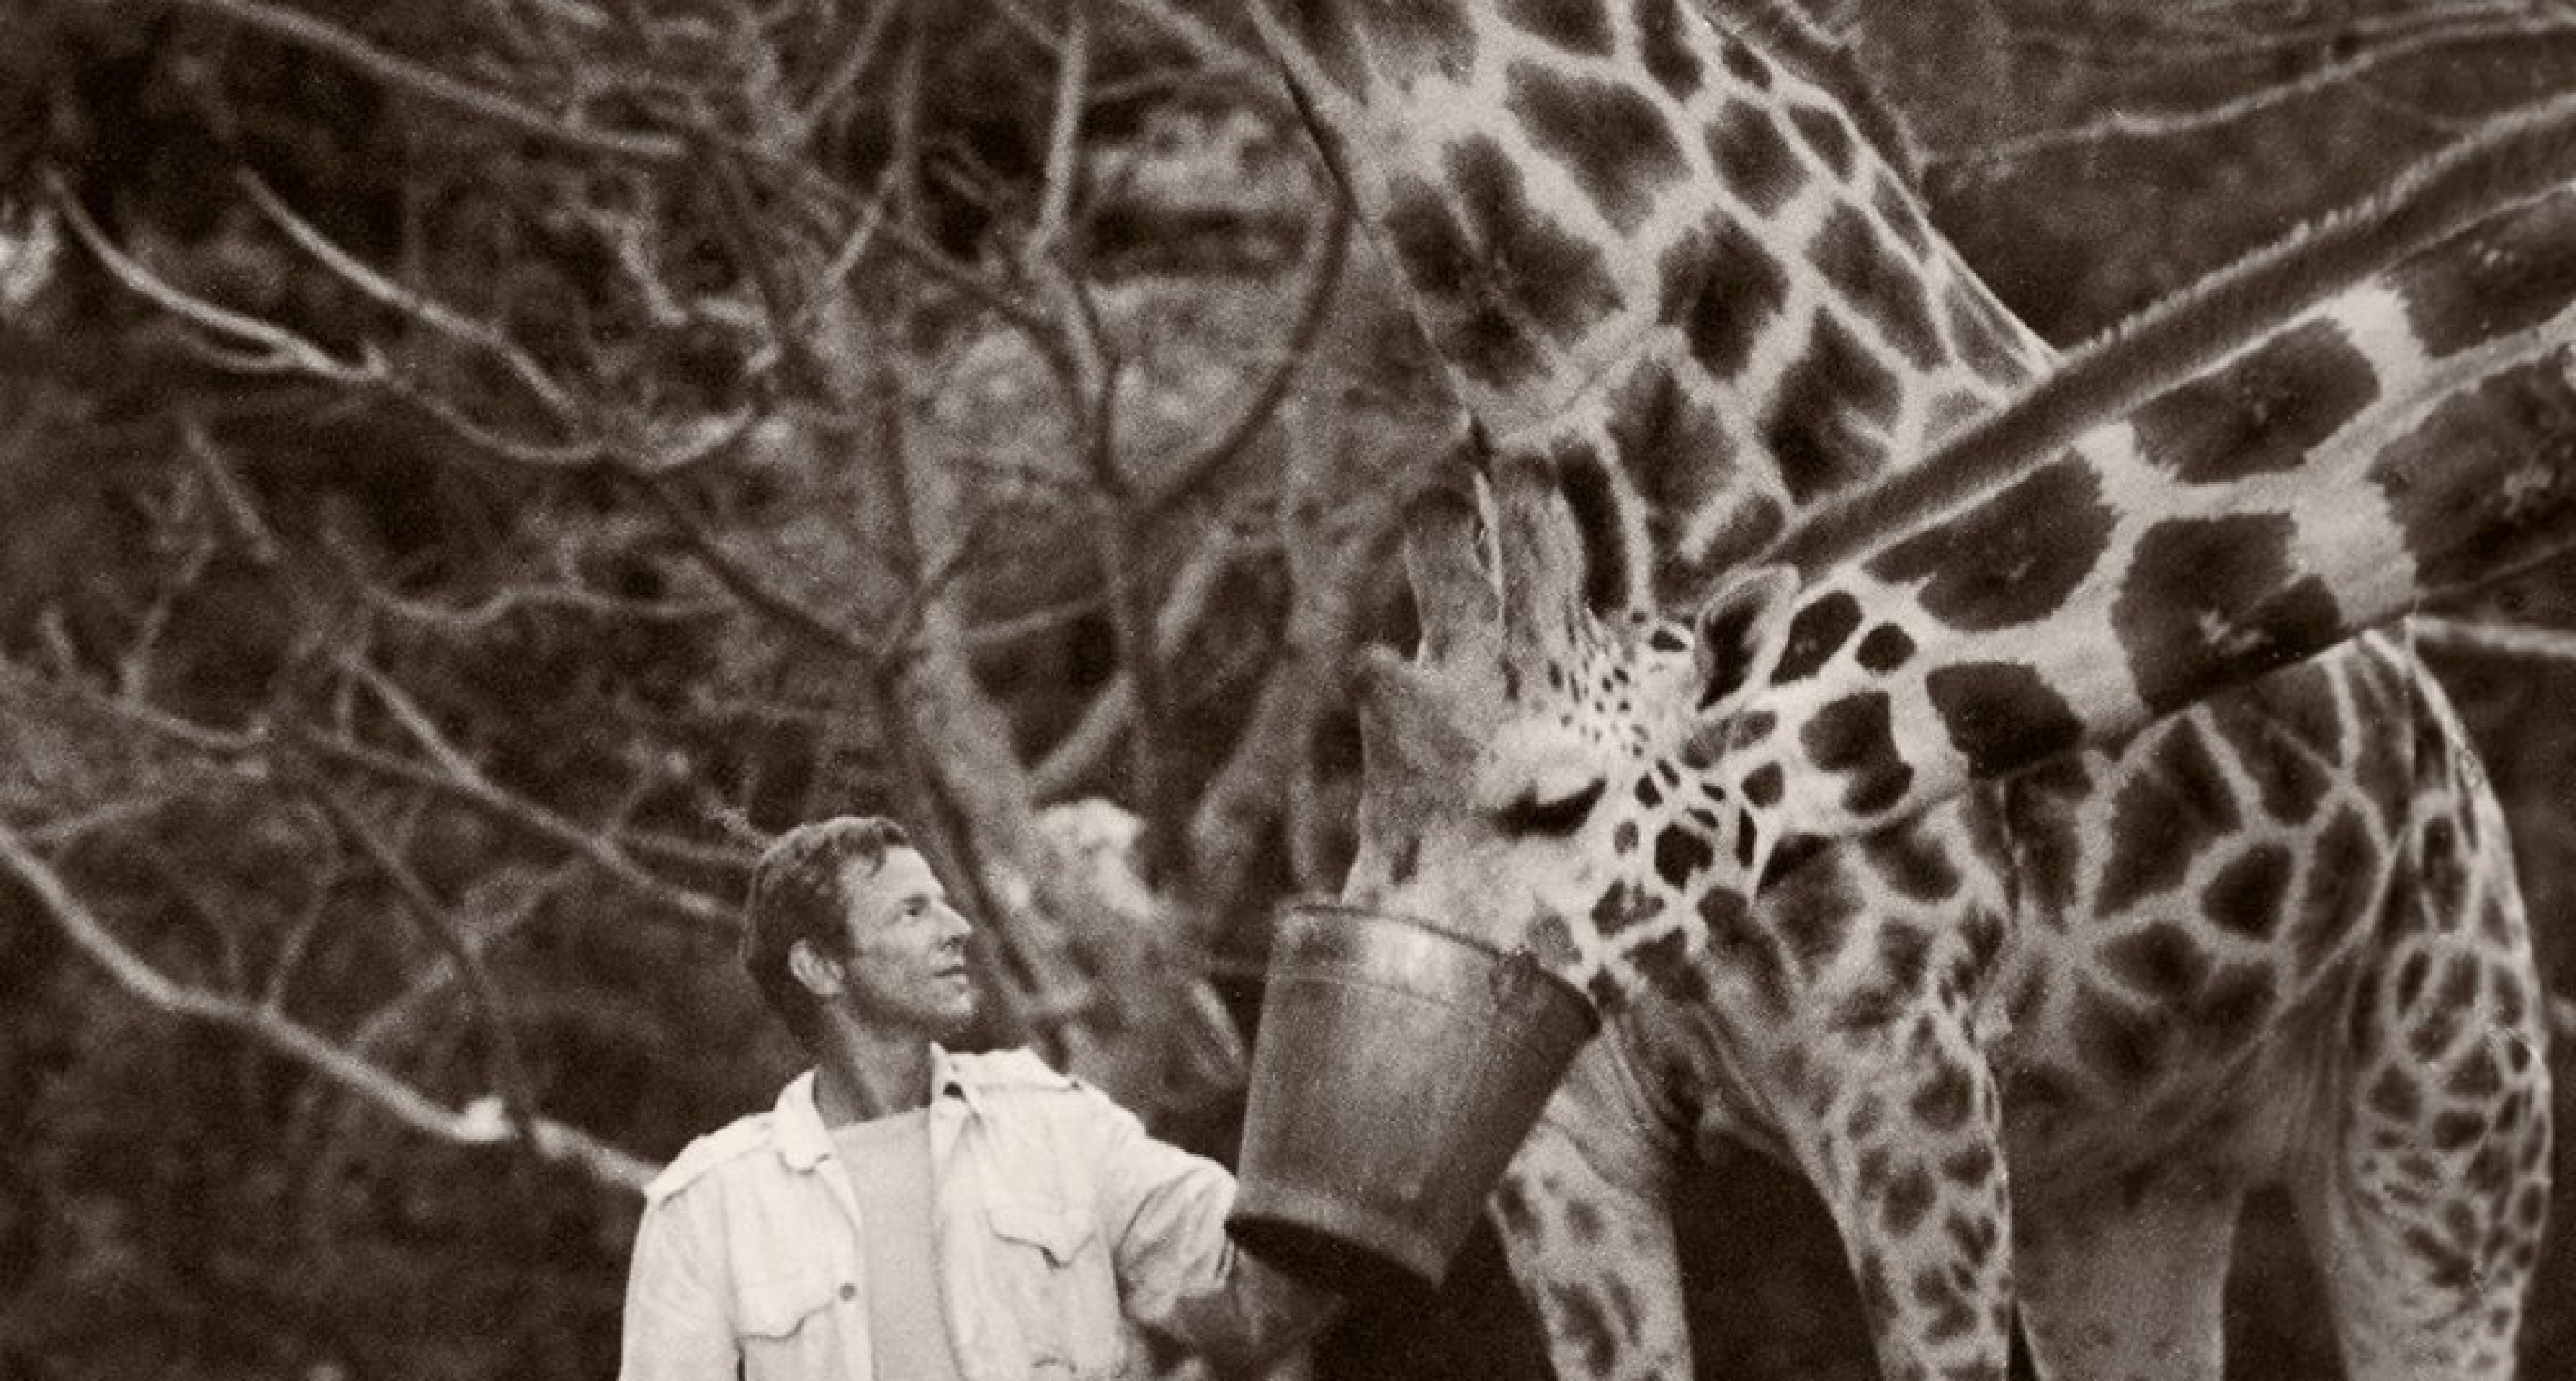 Peter Beard and giraffes, Hog Ranch front lawn, 1985 © 2020 Peter Beard